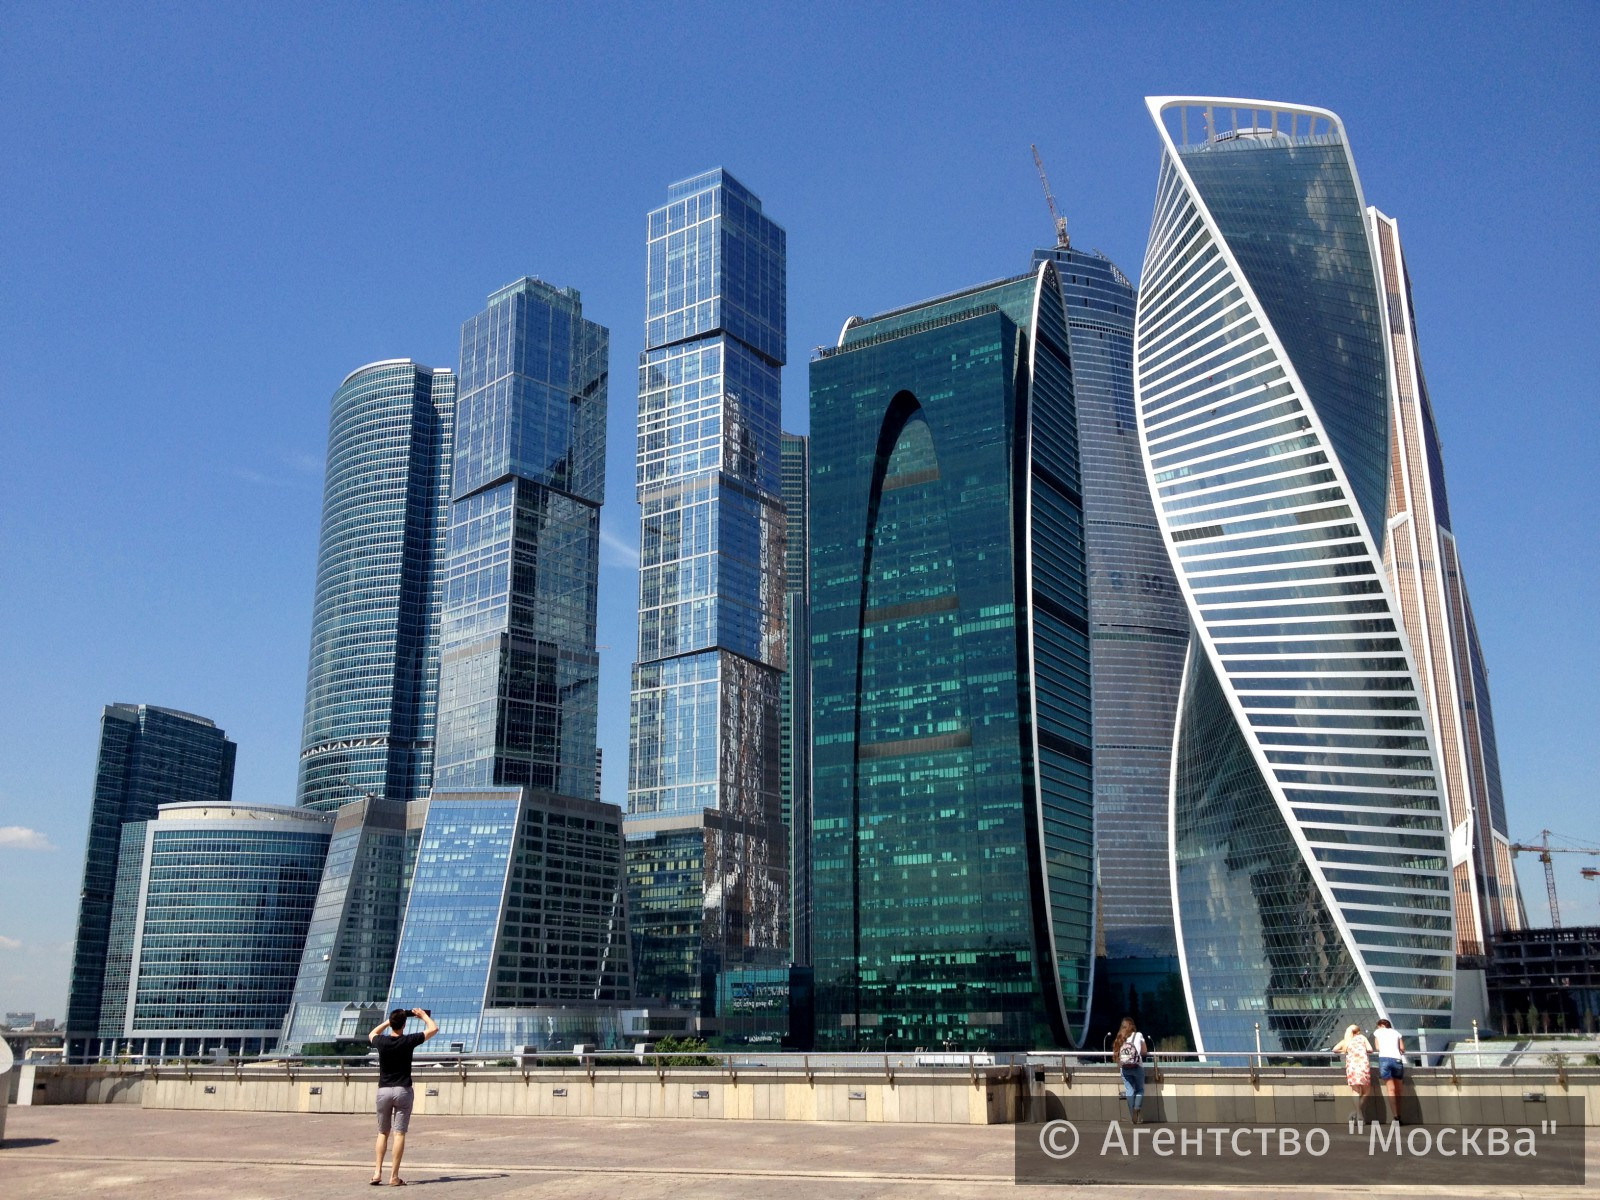 The Russian government is trying to make the country more business-friendly. Photo: Moscow City business center. Source: Moskva Agency